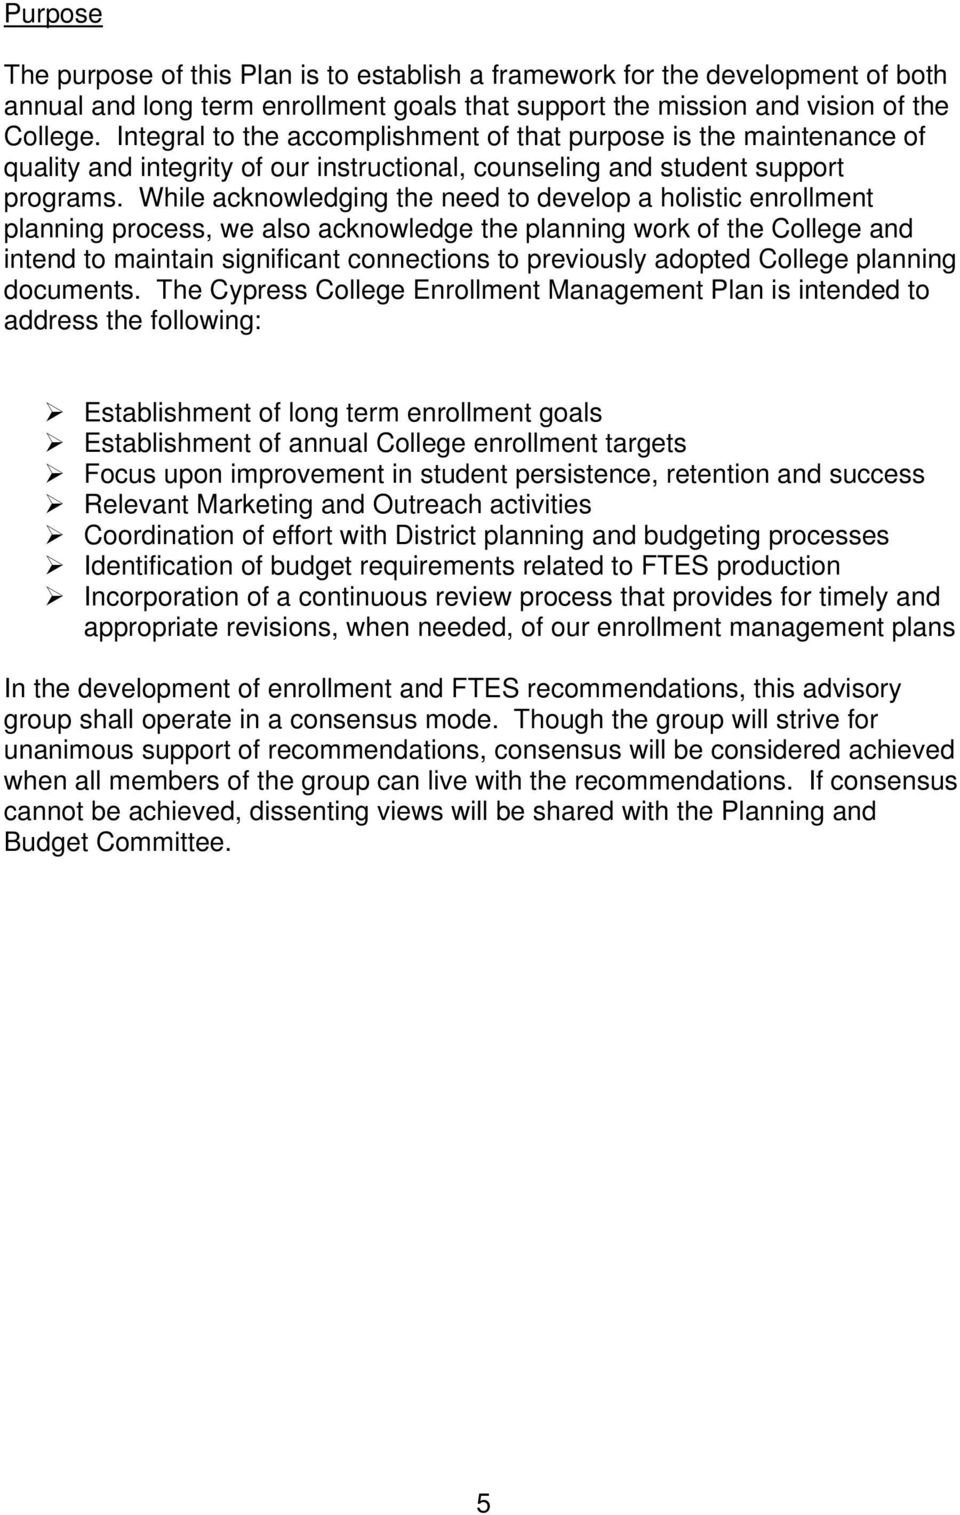 While acknowledging the need to develop a holistic enrollment planning process, we also acknowledge the planning work of the College and intend to maintain significant connections to previously